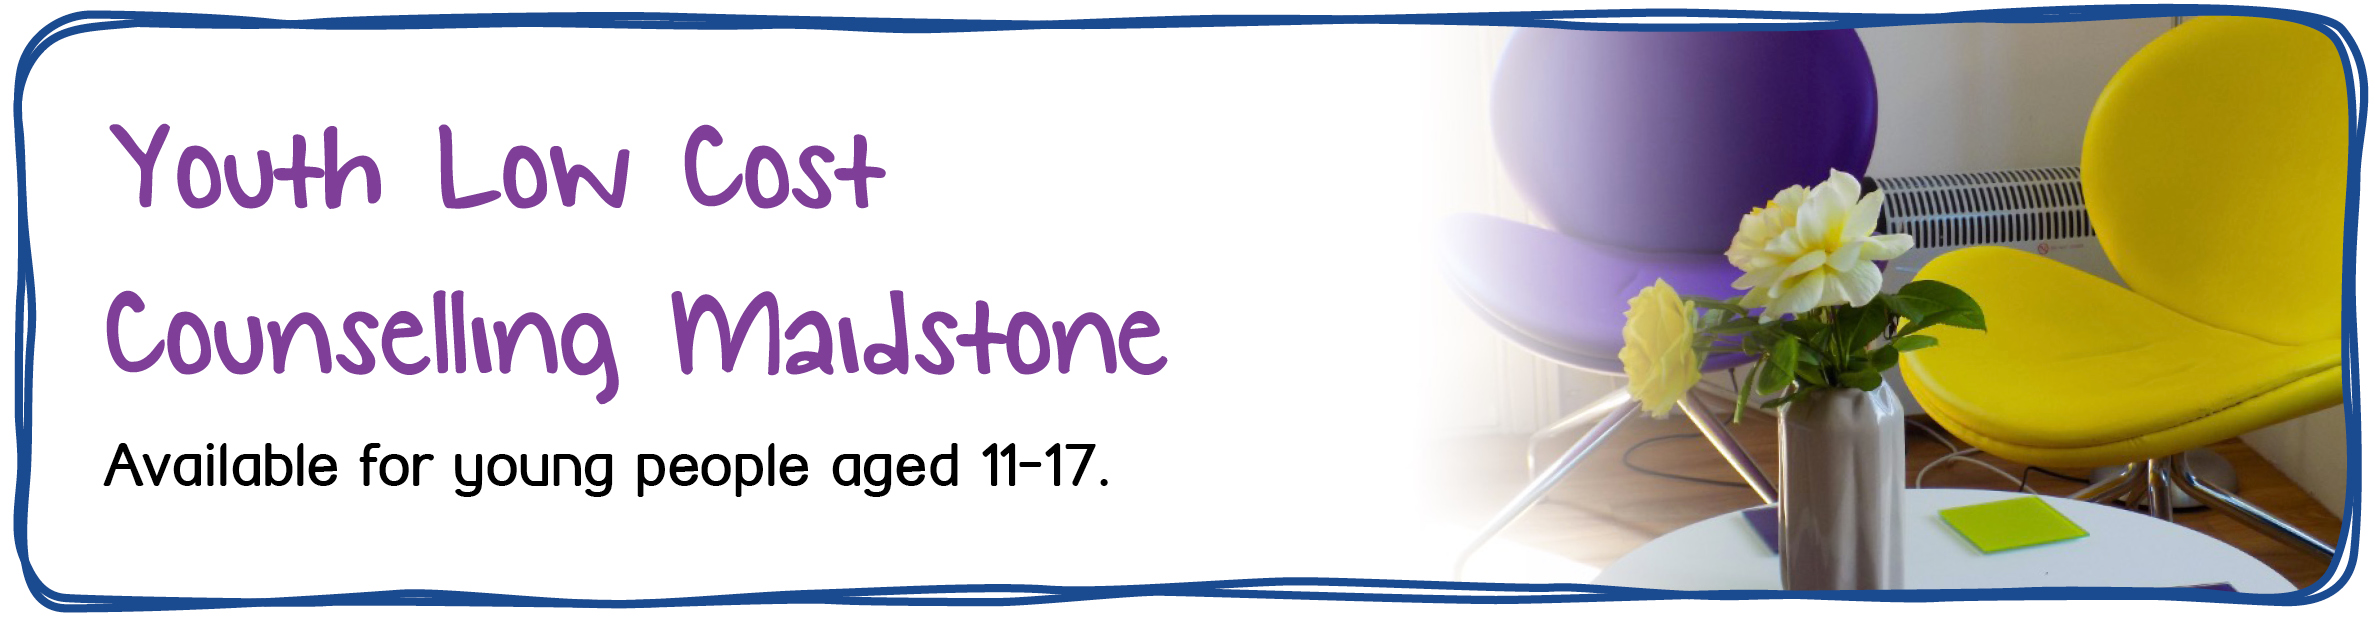 Youth Services - Youth Low Cost Counselling Maidstone - Youth Low Cost Counselling Services available for anyone aged 11-17 in Maidstone.